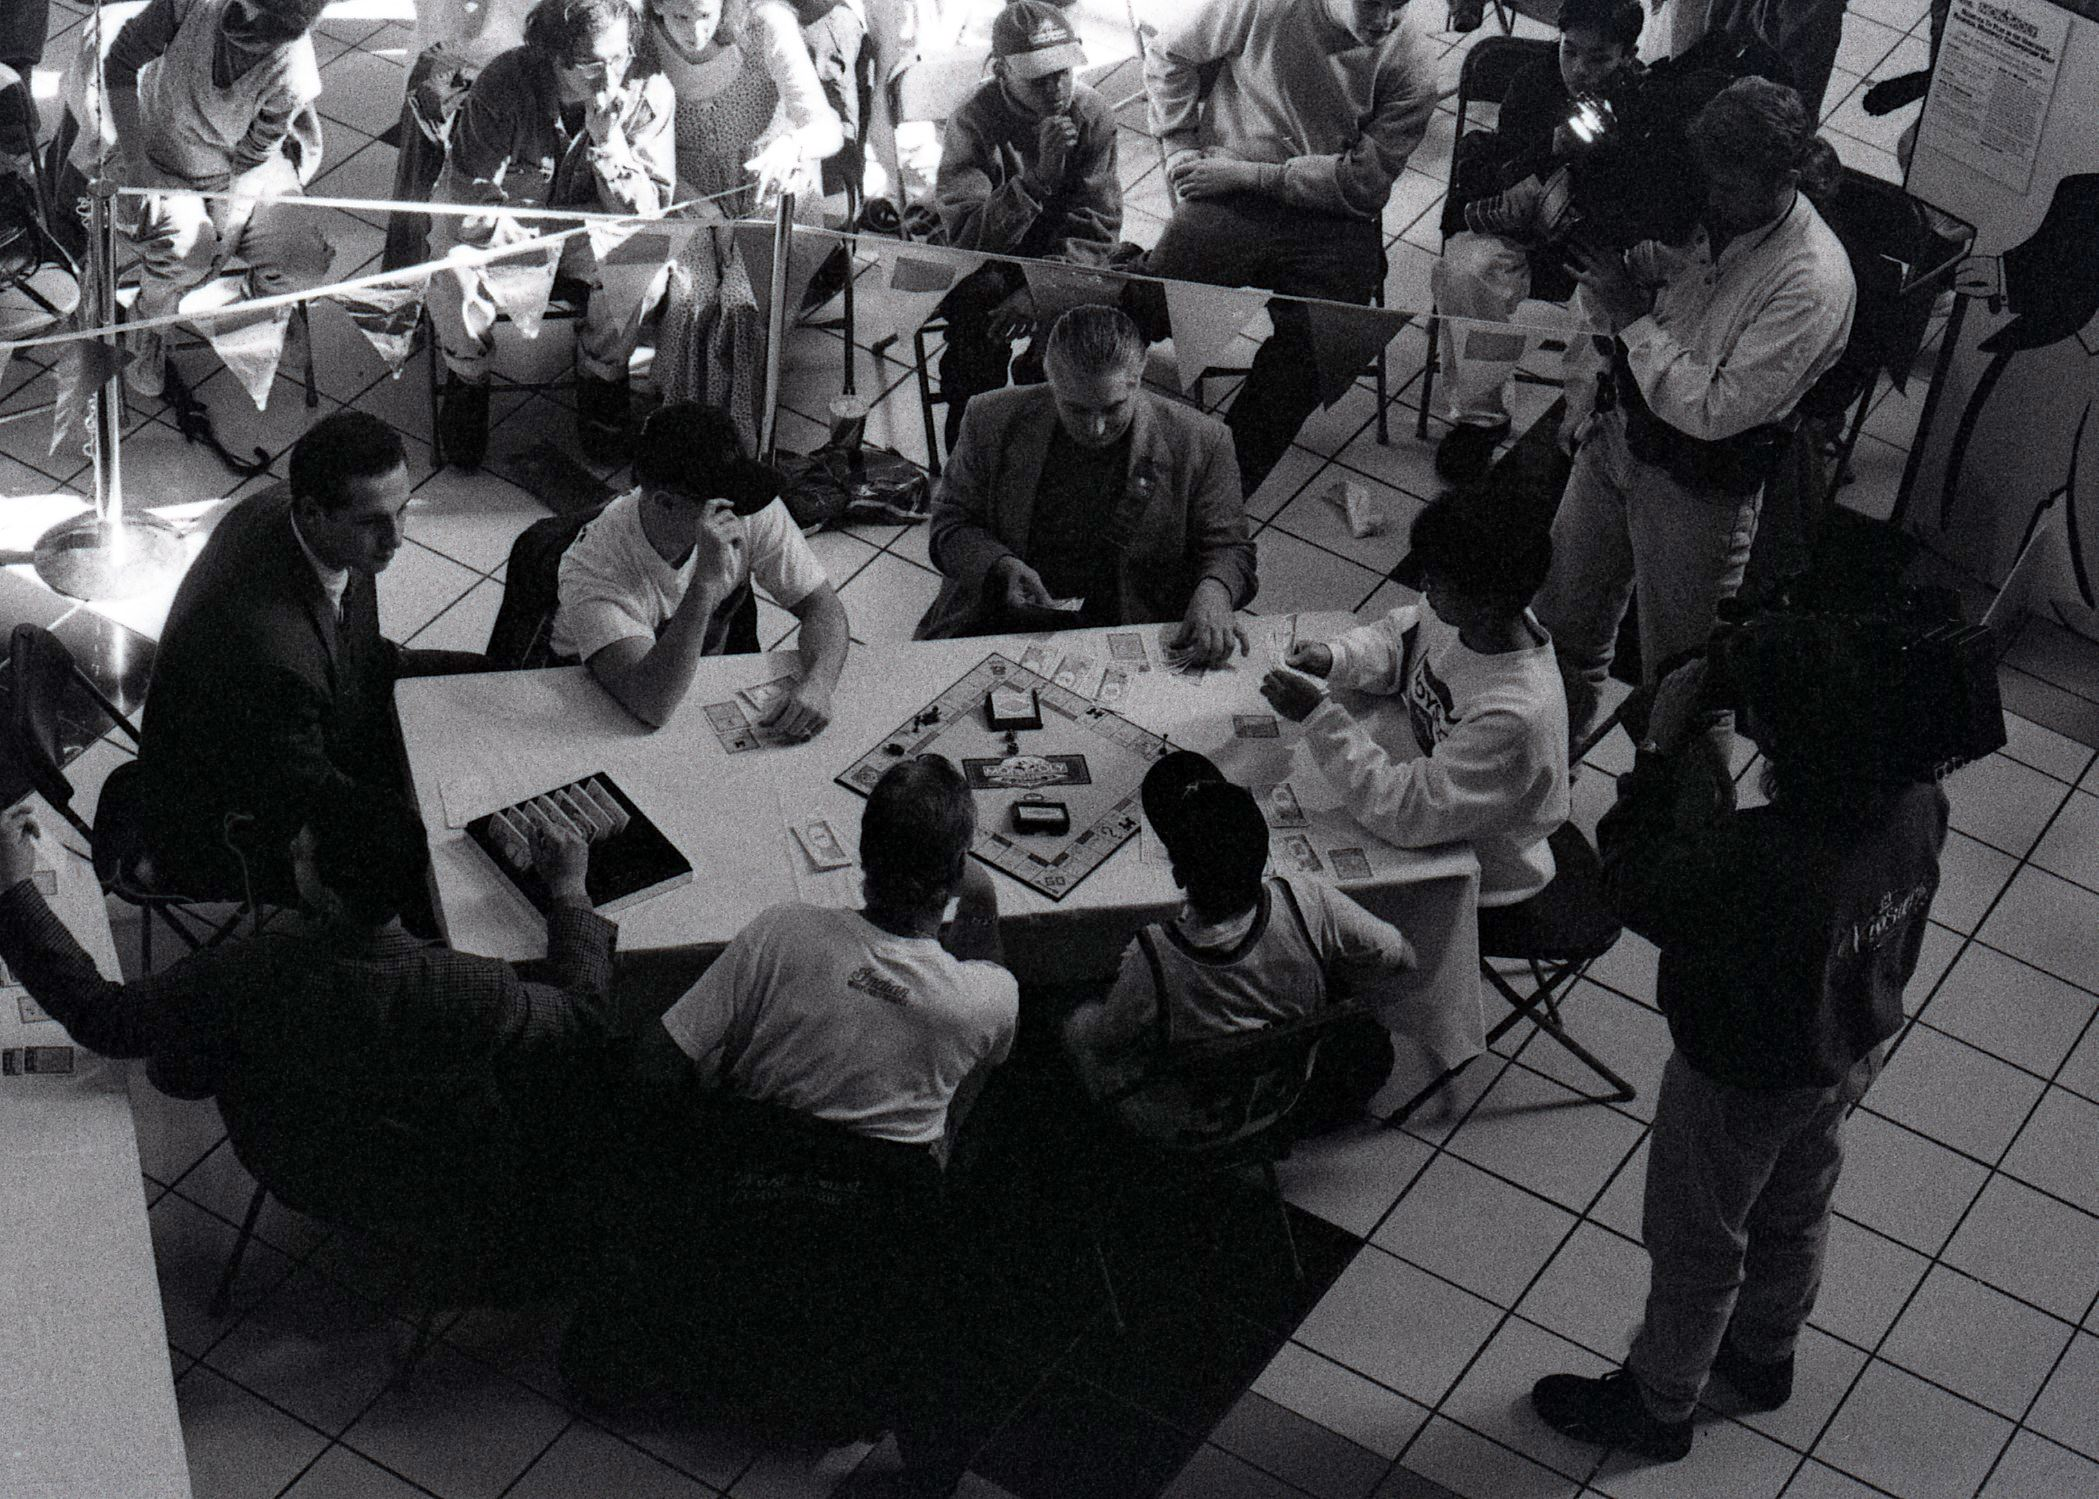 Regional Monopoly Championships at Coquitlam Centre, 1995 (JPG) Opens in new window